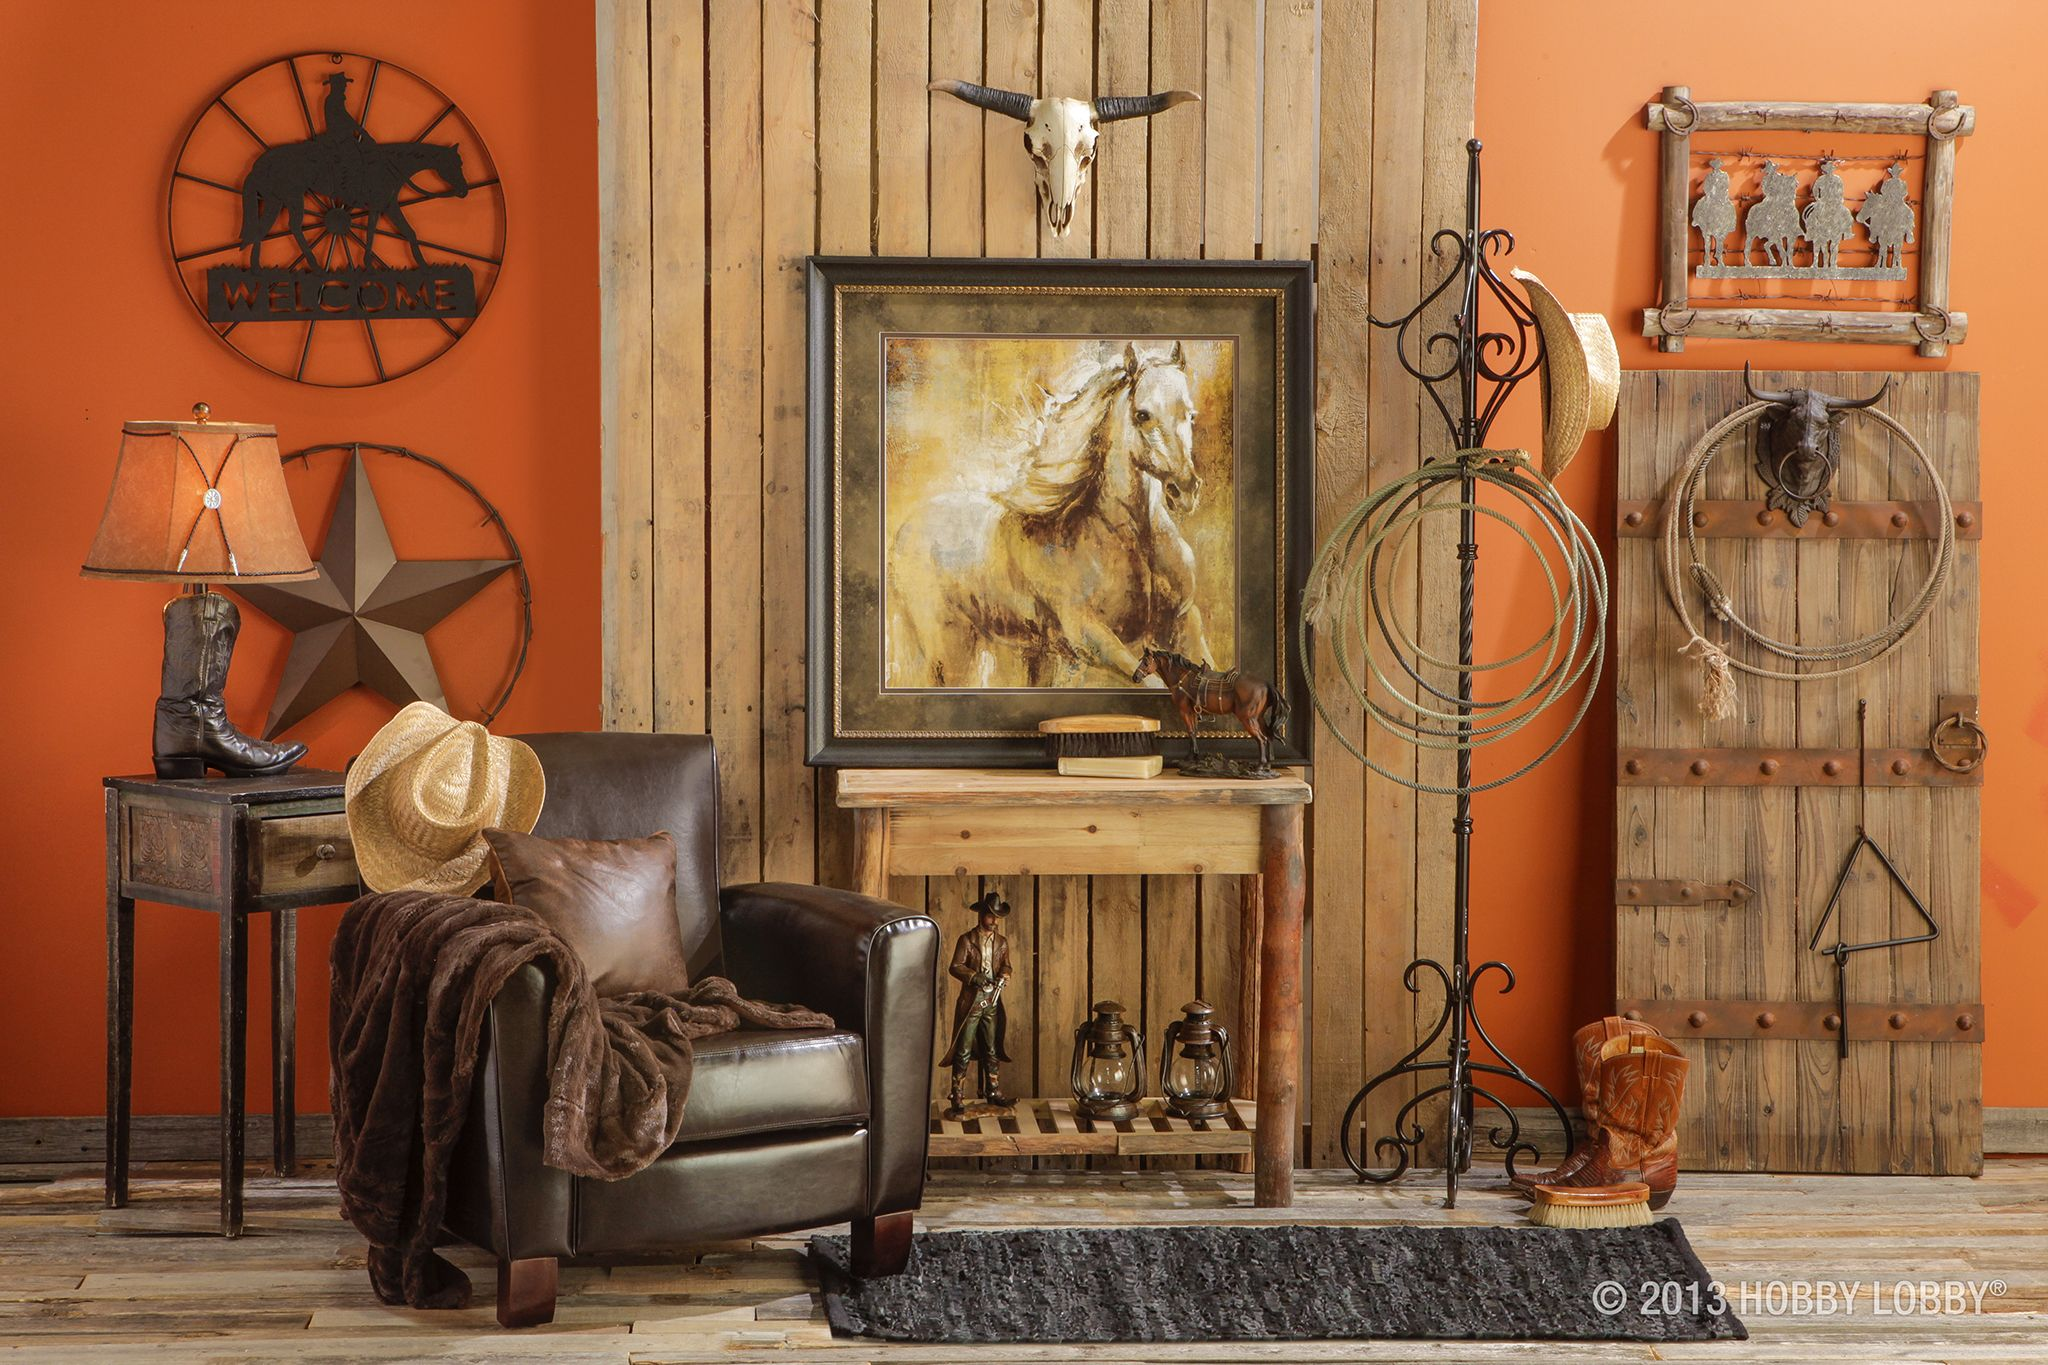 We love the use of old and new in this western retreat